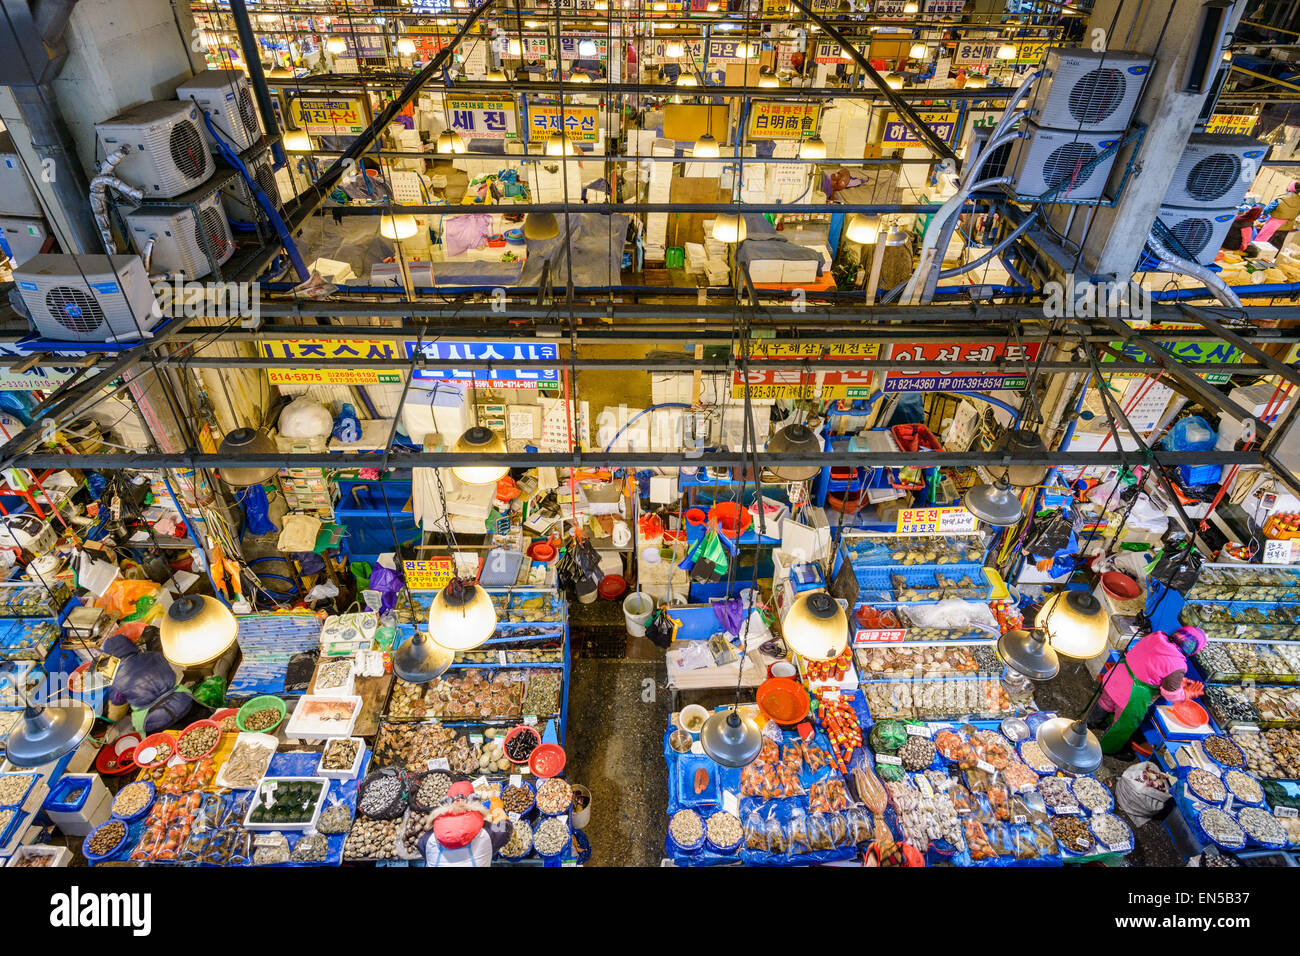 Aerial view of shoppers at Noryangjin Fisheries Wholesale Market in Seoul, South Korea. - Stock Image